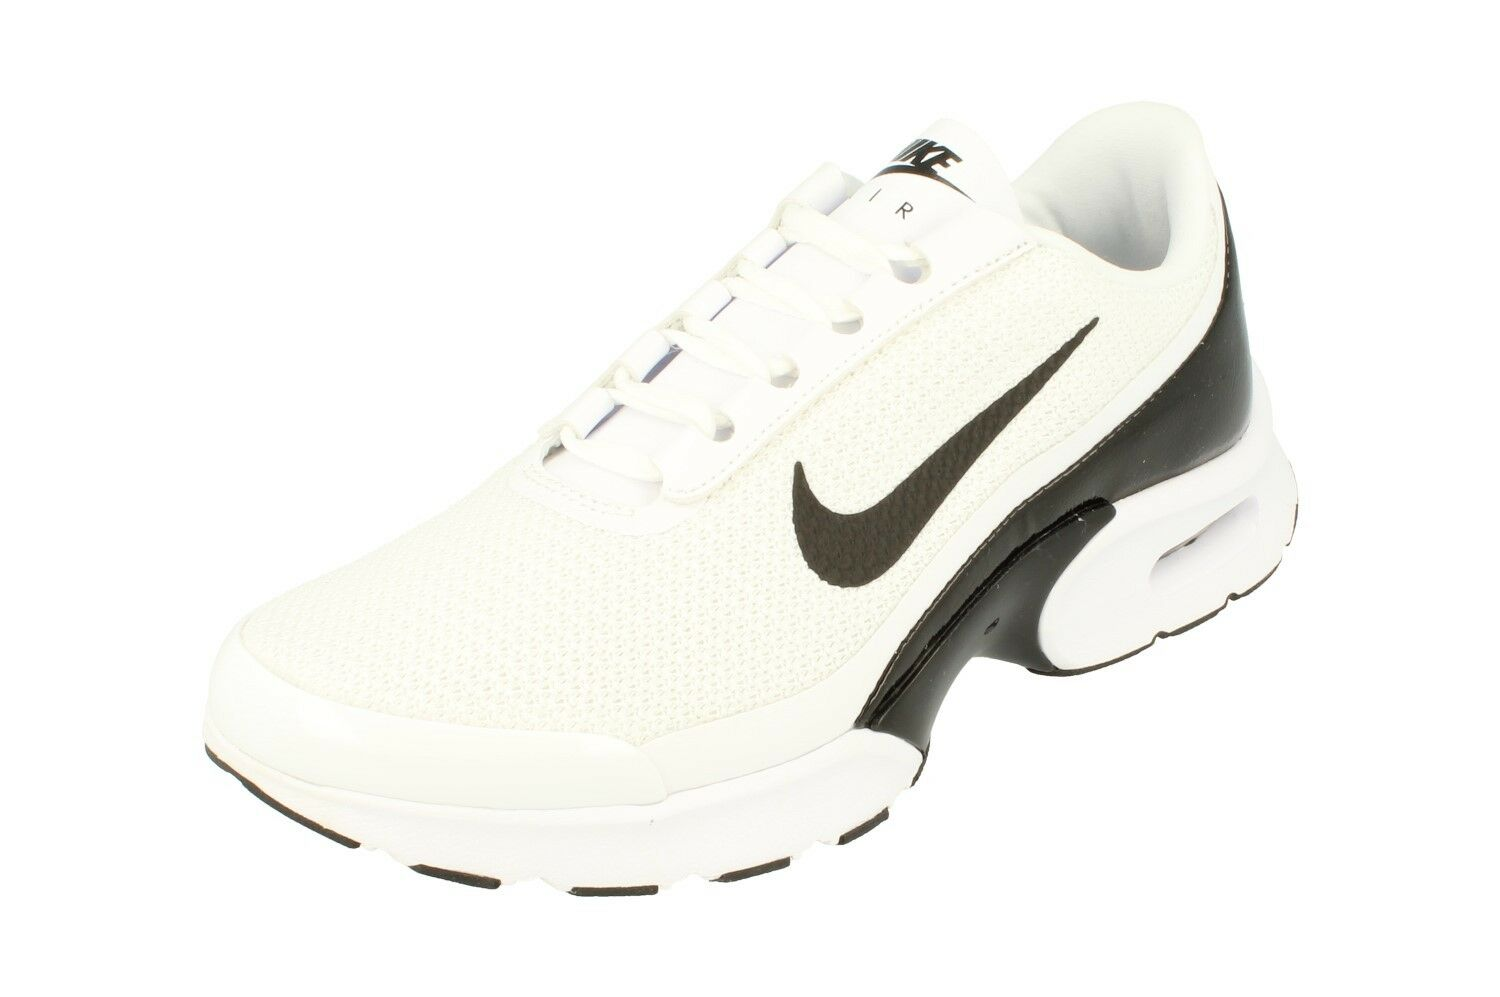 Nike Basket Femmes Air Max Strass Basket Nike Course 896194 Baskets 100 1b4696